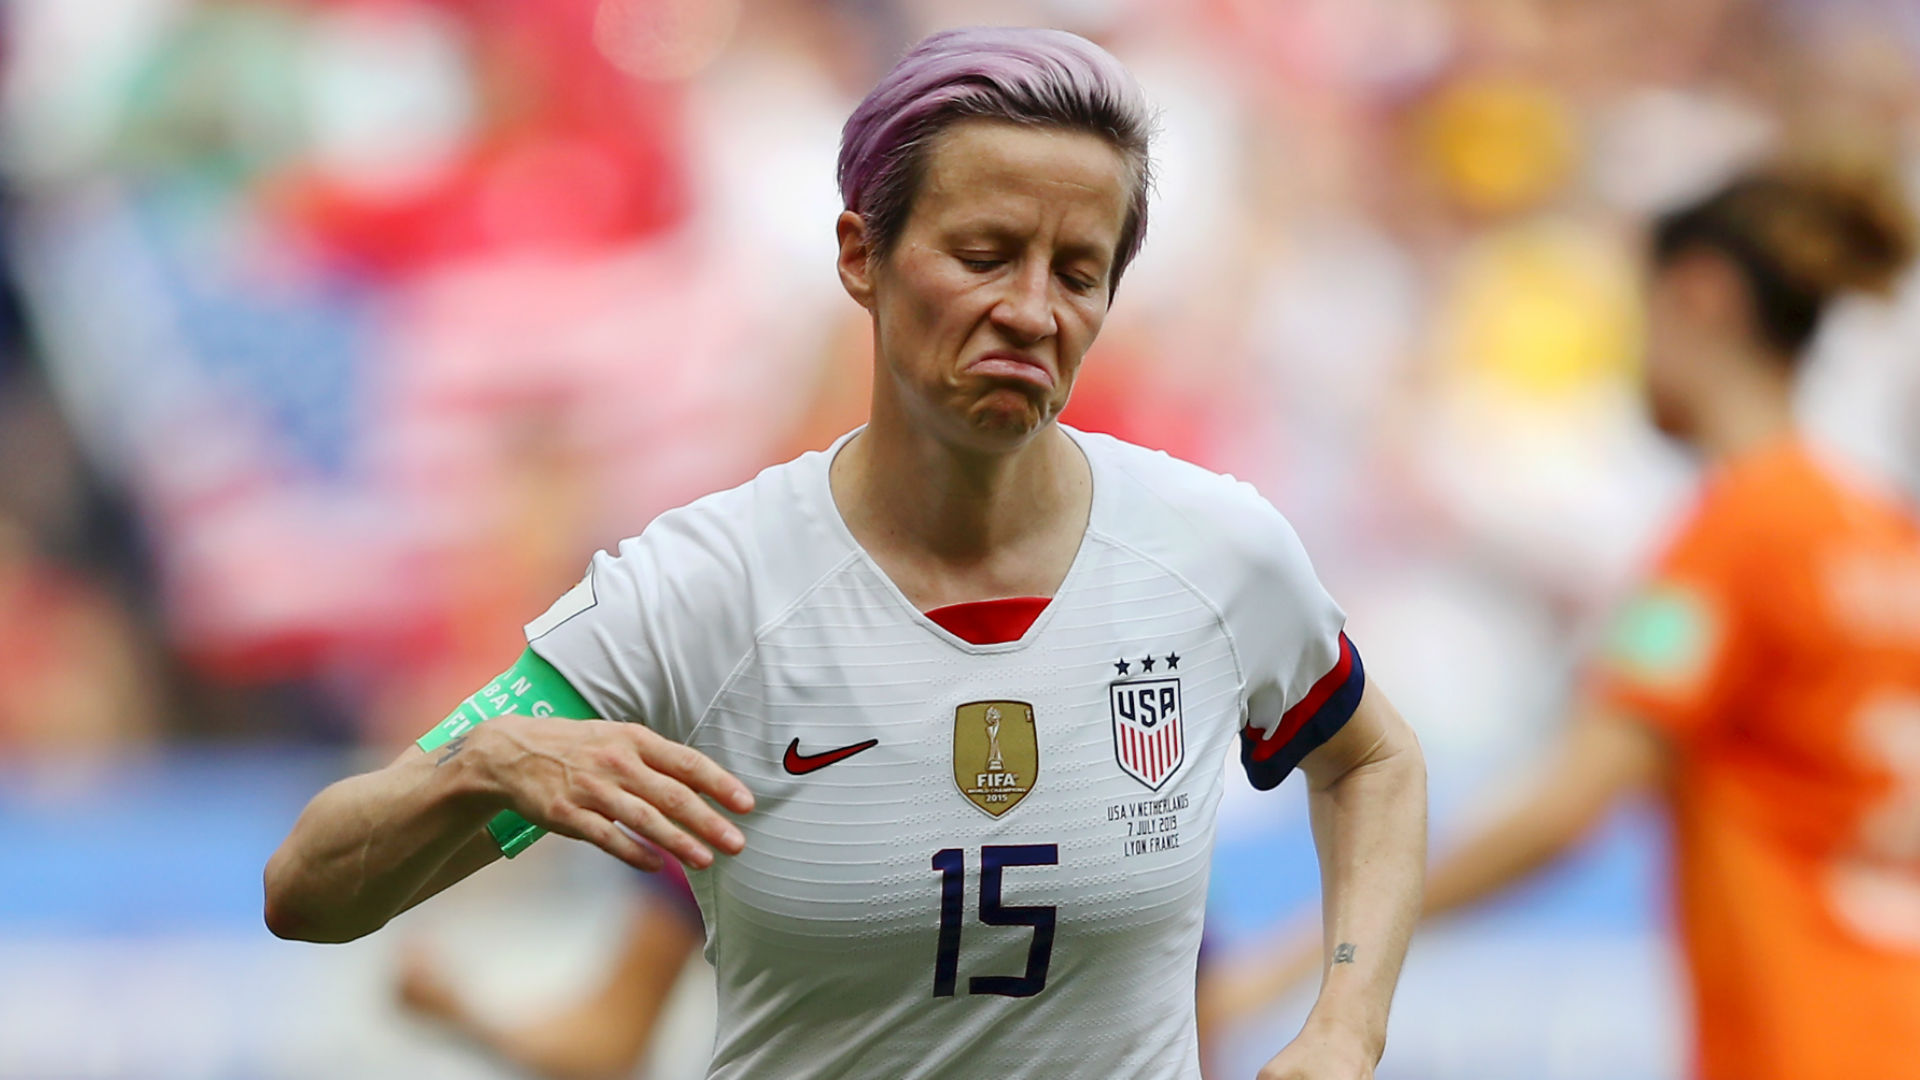 Megan Rapinoe victim of possible hate crime, according to NYPD